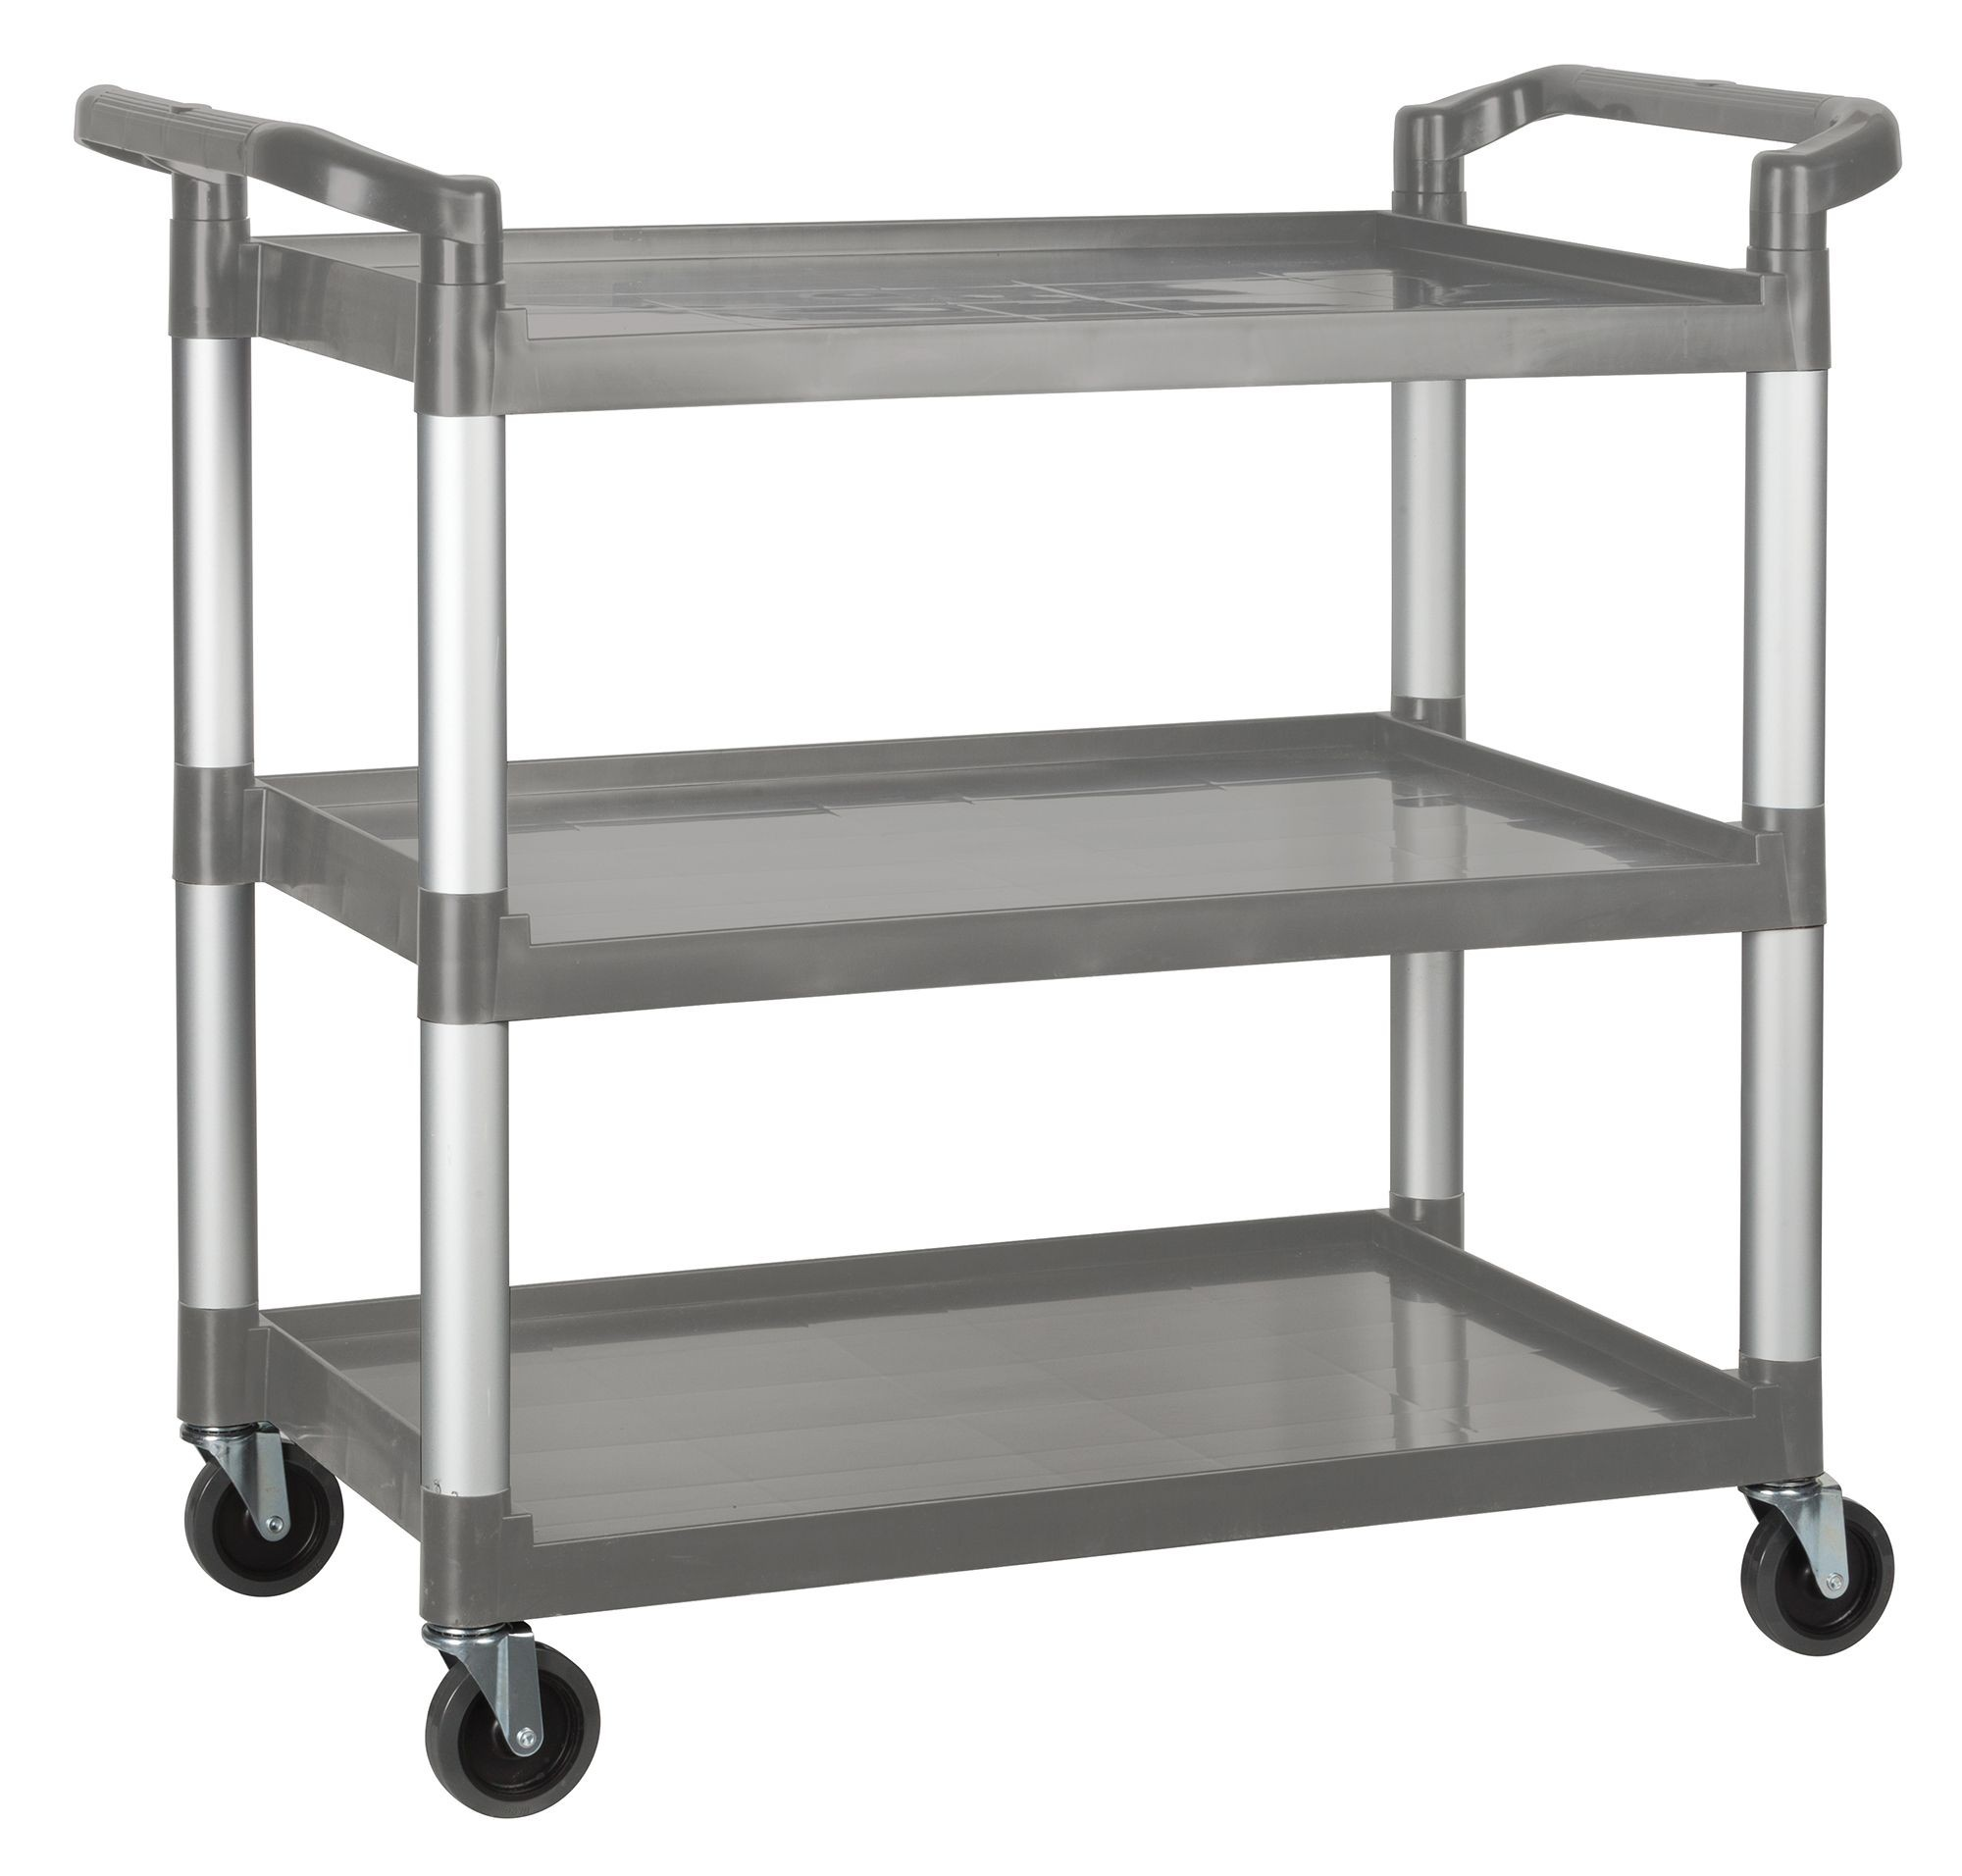 "Winco uc-40g 3 Tier Gray Utility Cart 40"" x 19-3/4"" x 37-1/2"""